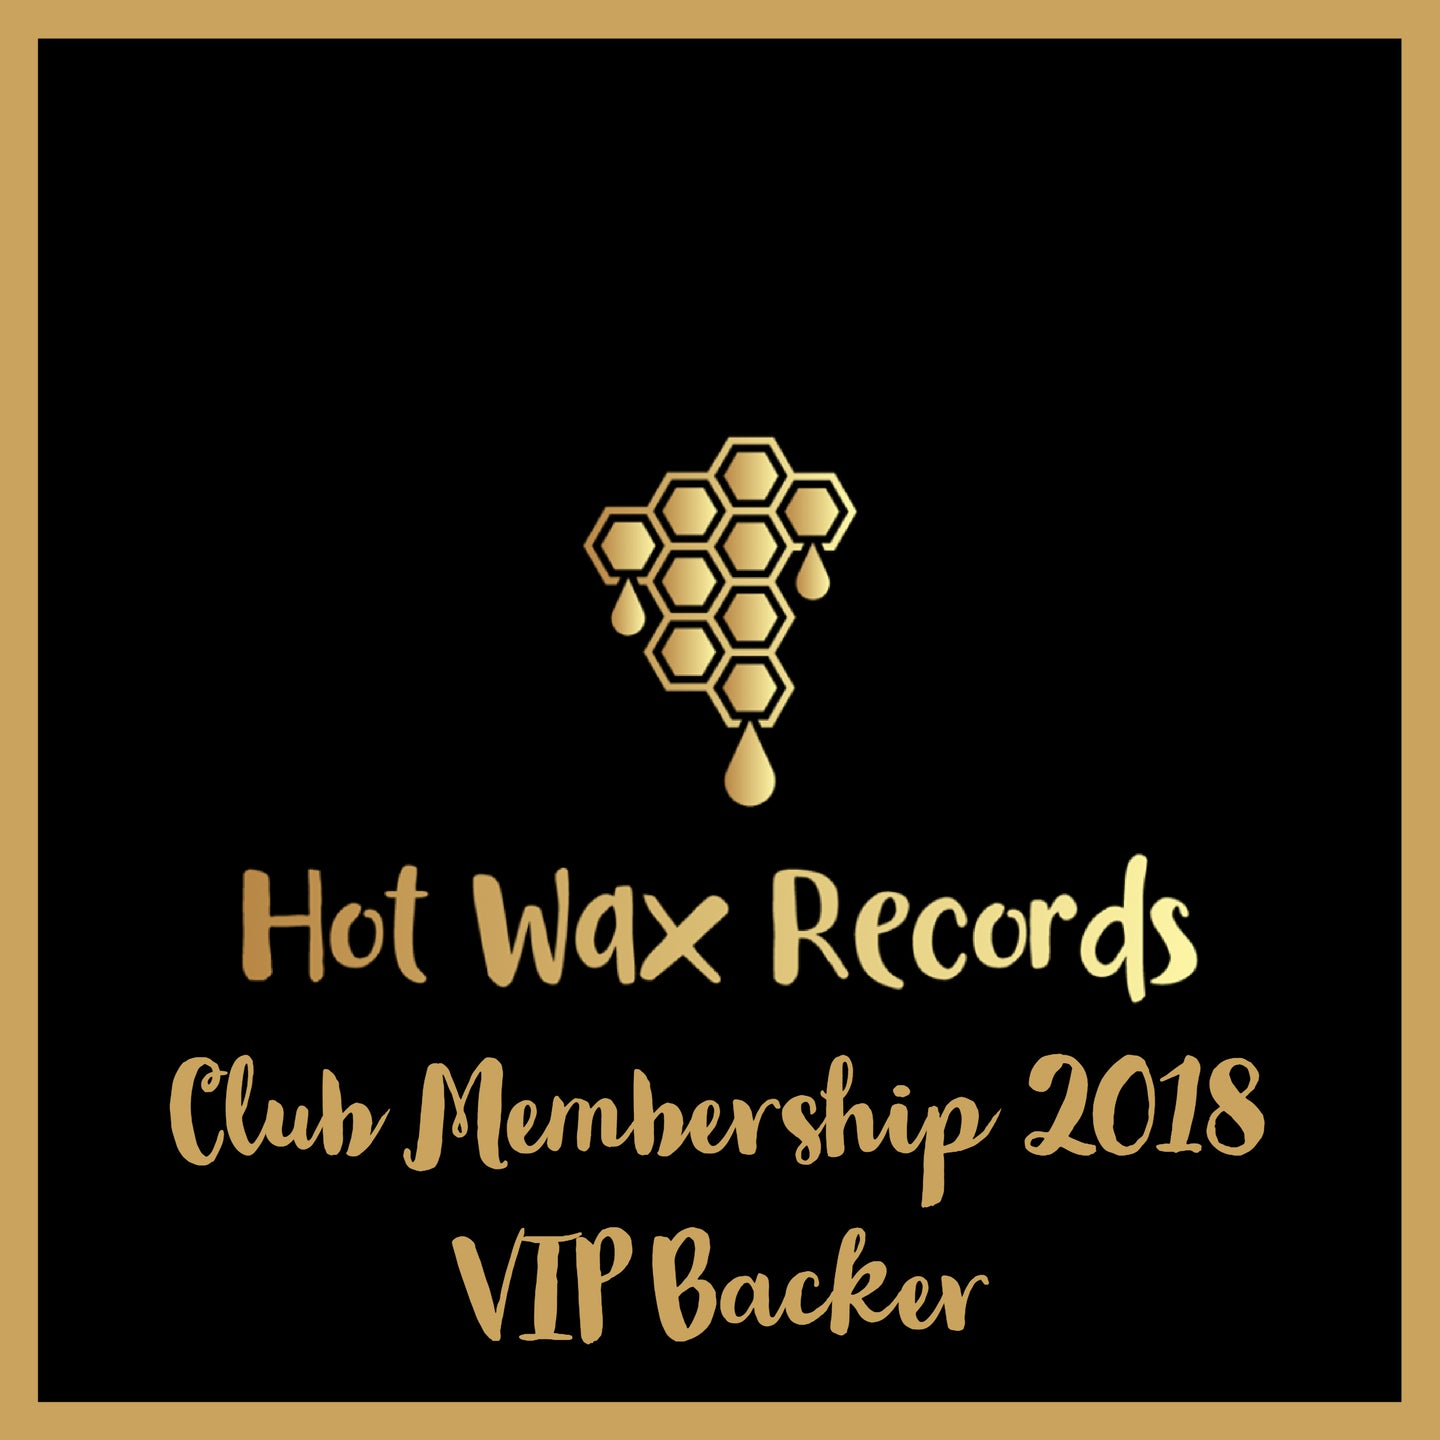 Hot Wax Records - Club Membership - 2018 - VIP Backer